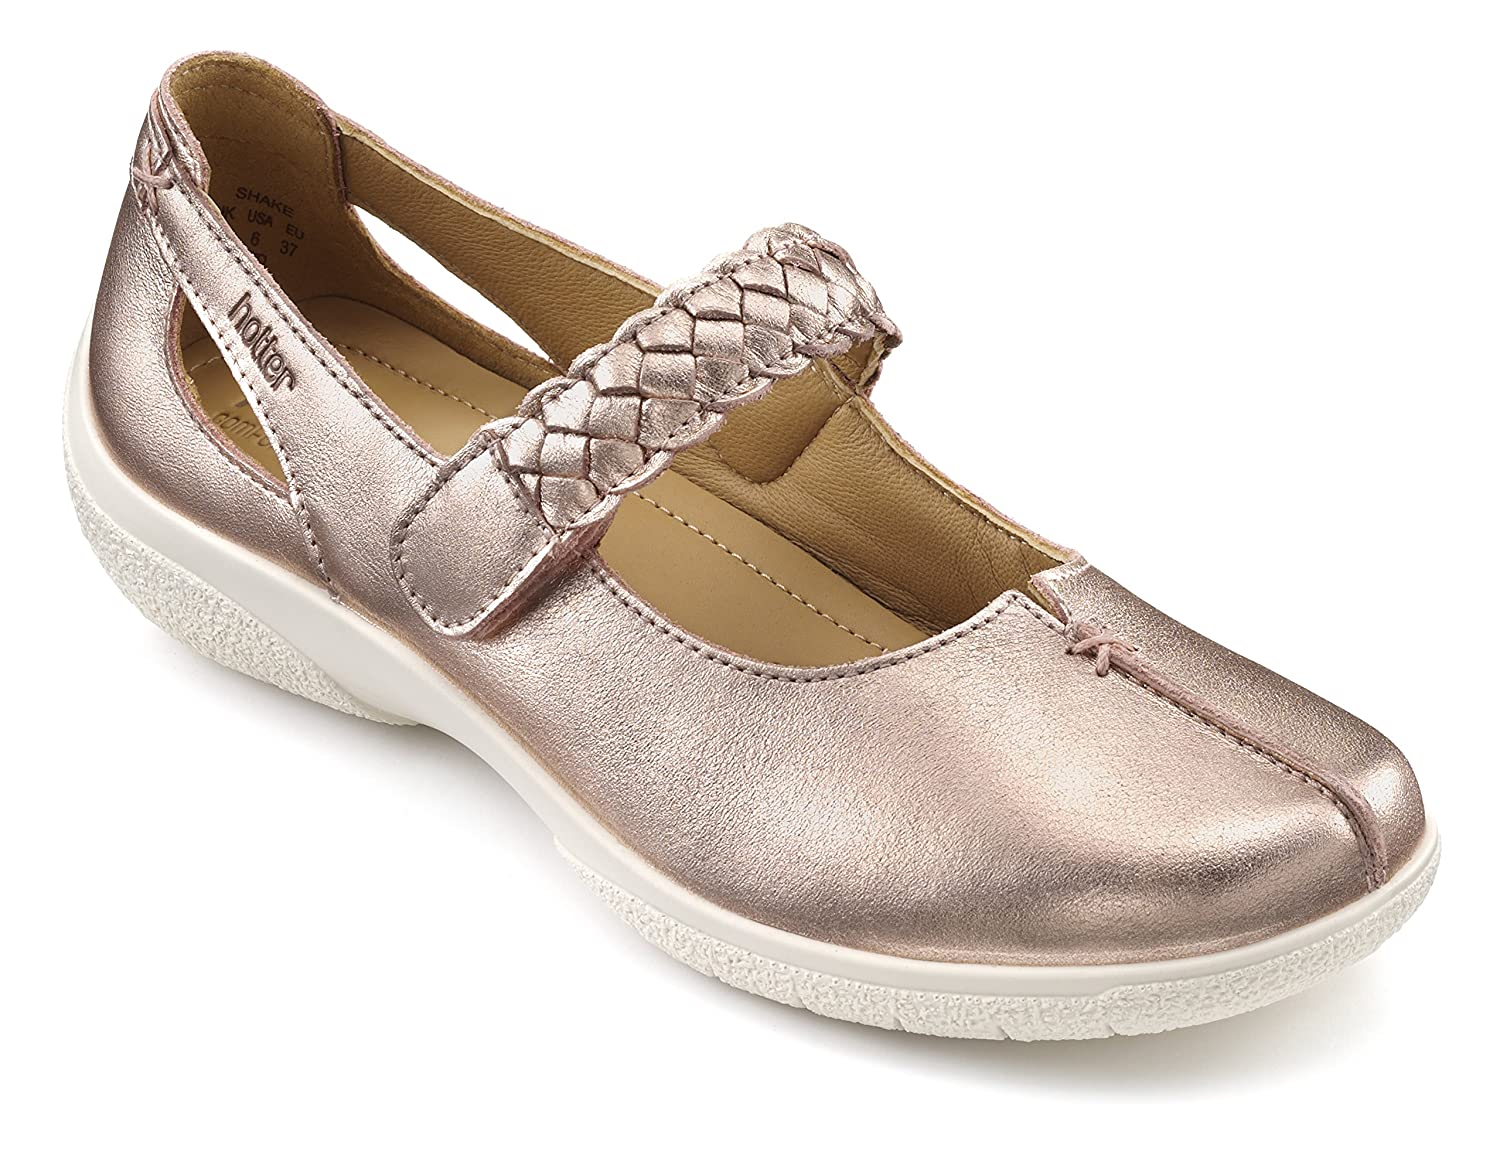 Hotter Mary Janes pour (Rose Femme Gold 12767 pour (Rose Gold) 74a2936 - boatplans.space